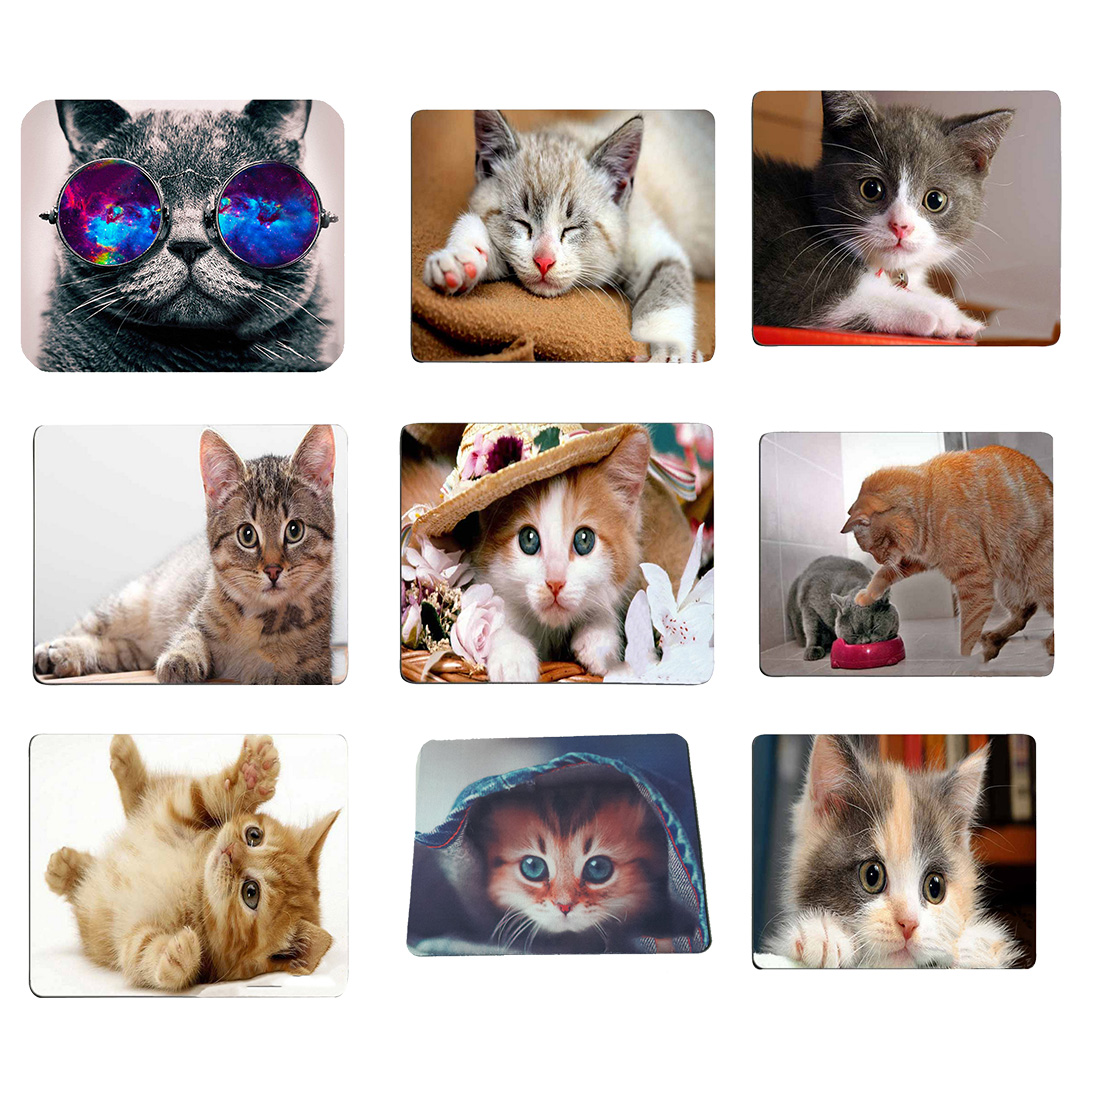 NOYOKERE Mouse Pad Cute Cat Picture Anti-Slip Laptop PC Mice Pad Mat Mouse pads For Optical Laser Mouse Gamer Mousepad maikou mouse pad cat wears eyeglasses